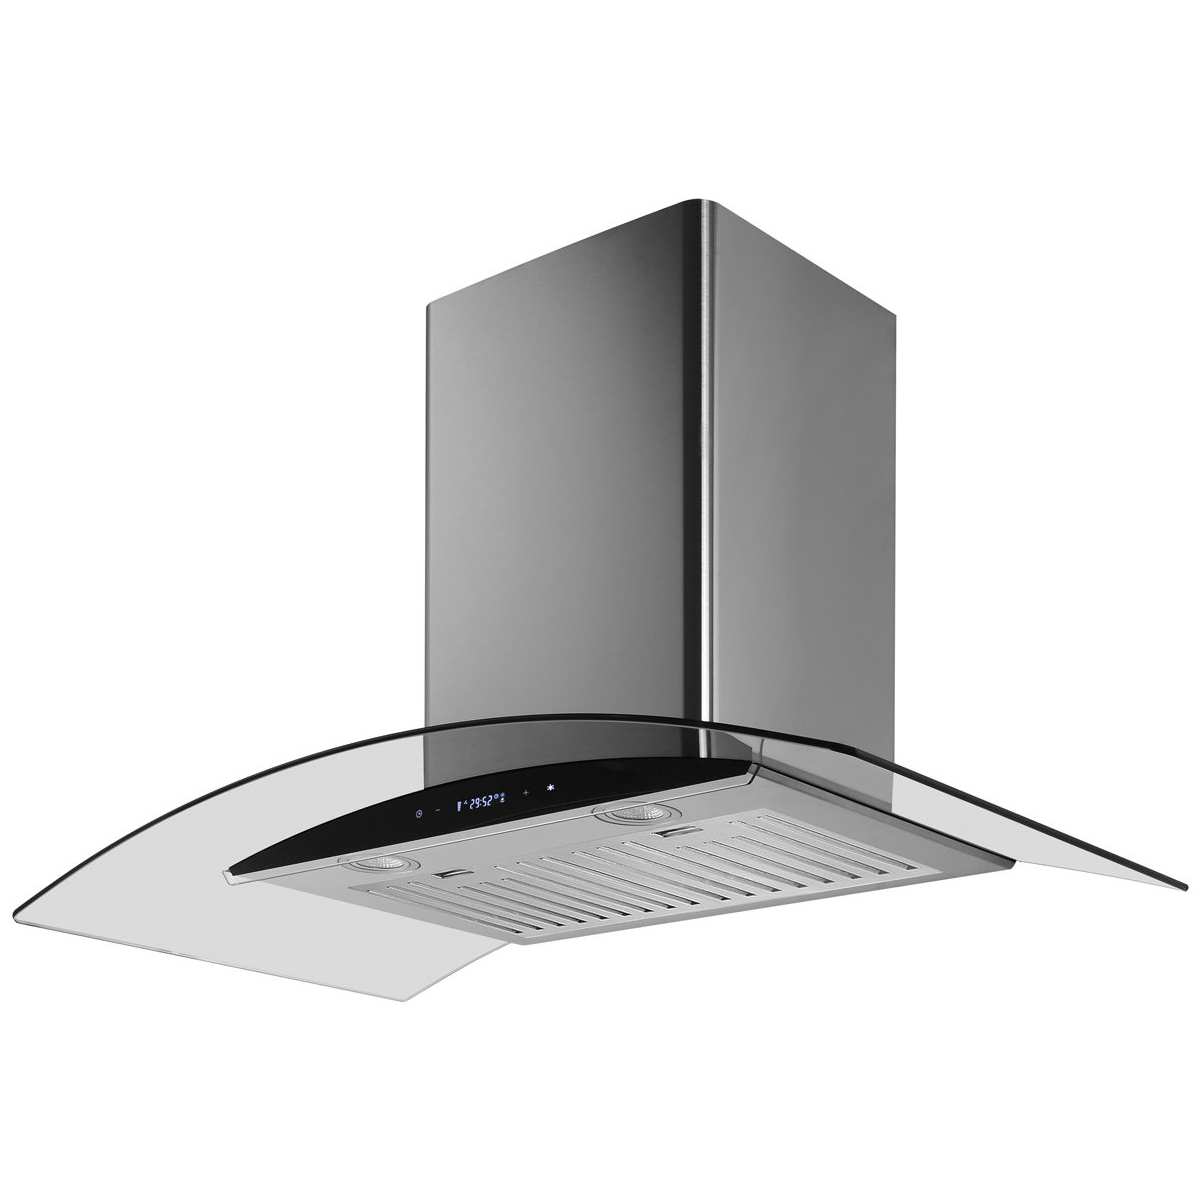 Residentia RH92GB 90cm Curved Glass Canopy Rangehood